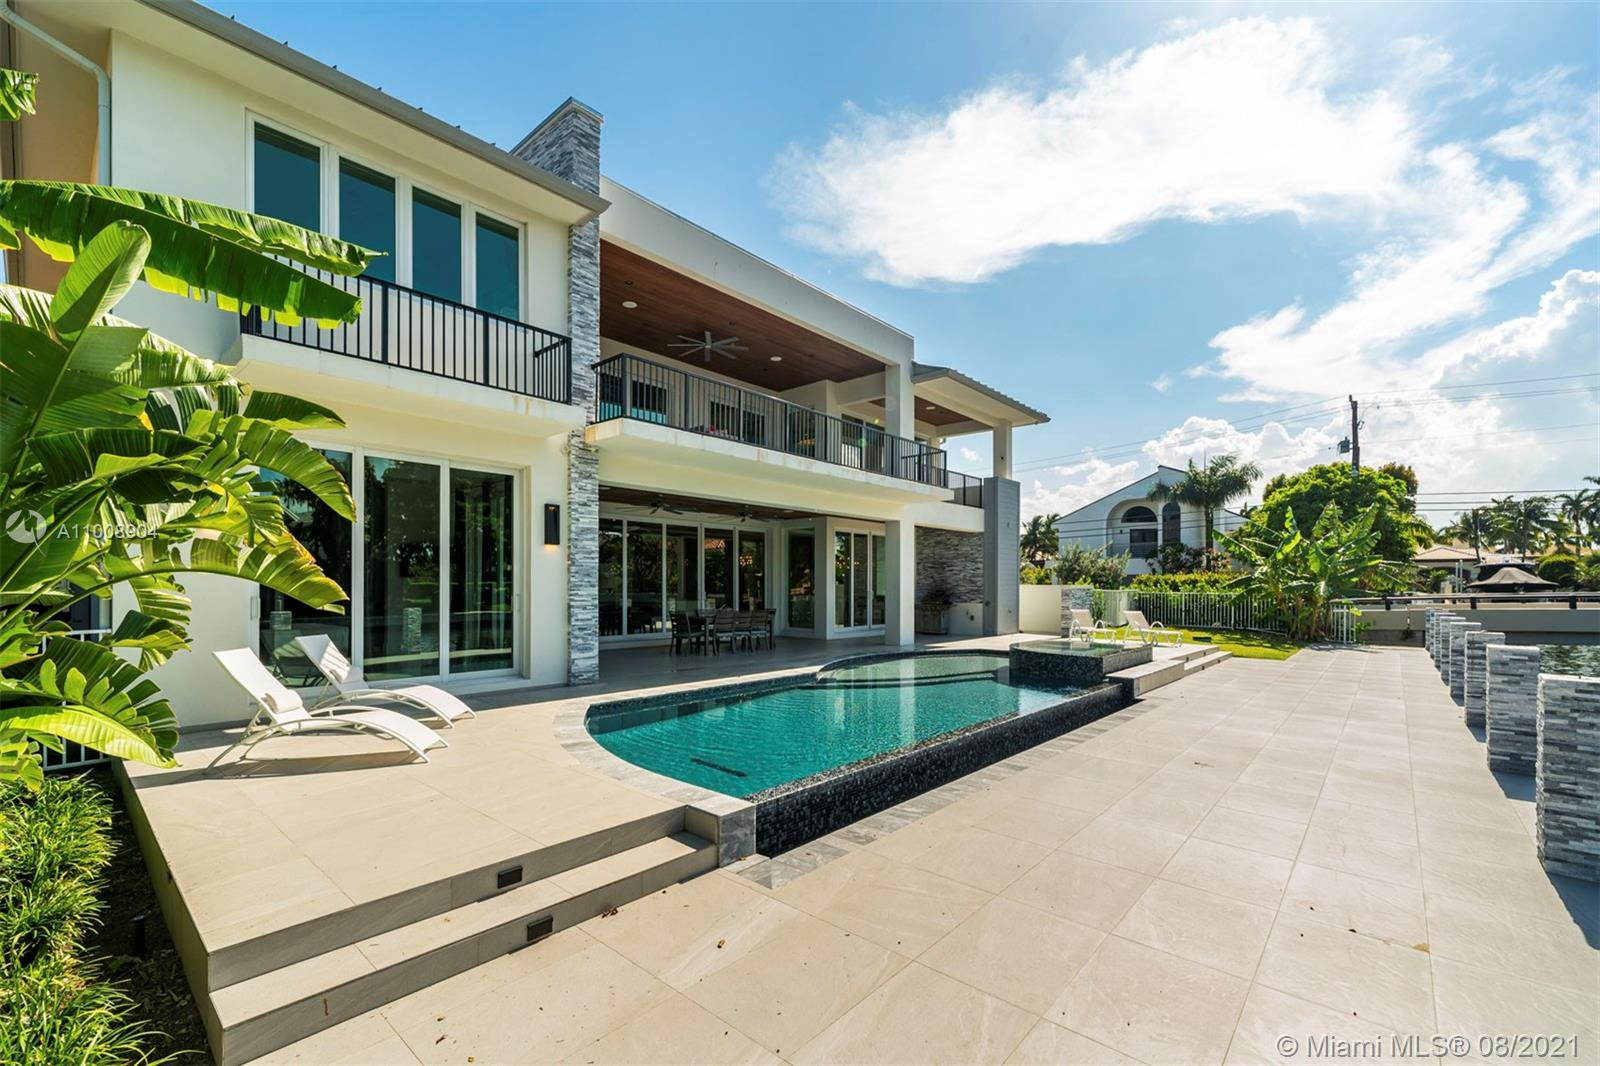 INCREDIBLE HOME IN ONE OF THE BEST NEIGHBORHOODS IN LAS OLAS, SEVEN ISLES. GORGEOUS OPEN & SPACIOUS FLOOR PLANS WITH EXPANSIVE OUTDOOR TERRACES PERFECT FOR ENTERTAINING. THIS HOME FEATURES A 3 CAR GARAGE, LARGE IMPACT WINDOWS & SLIDING DOORS THAT OPEN UP TO AN INCREDIBLE TERRACE, LARGE POOL WITH INFINITY EDGE & AN OUTDOOR CABANA BATH. FINISHED 100' OF WATERFRONT WITH QUICK OCEAN ACCESS PERFECT FOR A YACHT. SIX EN SUITE BEDROOMS WITH A LARGE MASTER & JUNIOR MASTER SUITE & SPACIOUS WALK-IN CLOSETS IN EVERY ROOM READY TO TRANSFORM INTO THE CLOSETS OF YOUR DREAMS. THE OPEN KITCHEN FEATURES MIELE LUXURY APPLIANCES GAS RANGE A WINE ROOM & A LARGE PANTRY. THE HOME IS COMPLETELY FURNISHED AND EQUIPPED, JUST BRING YOUR SUITE CASES. RSVP FOR OPEN HOUSE ON JUNE 5, 2020 AT 6PM.